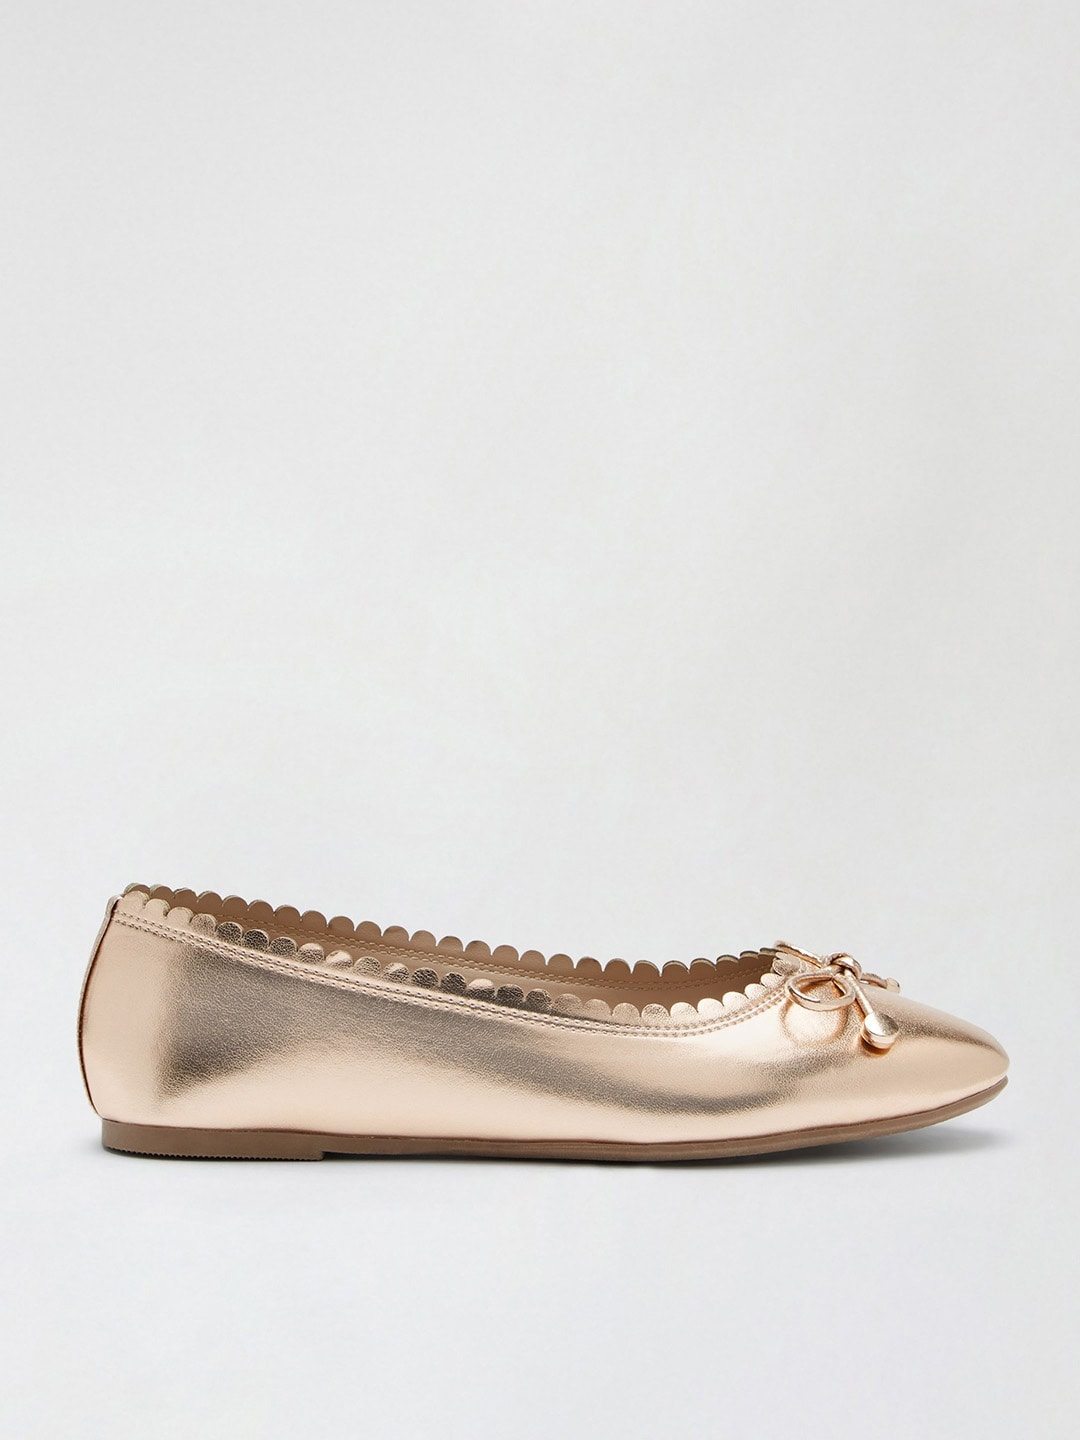 DOROTHY PERKINS Women Rose Gold-Toned Solid Metallic Ballerinas